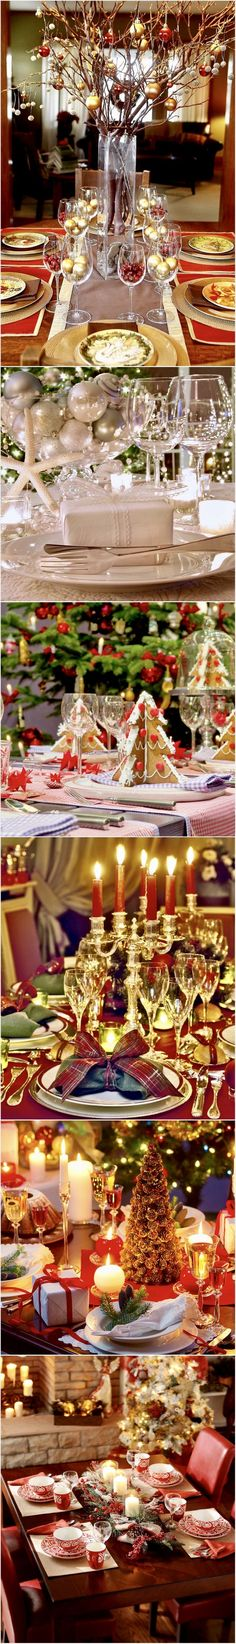 Top 150 Christmas Tables (2/5)🎄 Table decorations, Decoration and - christmas table decorations